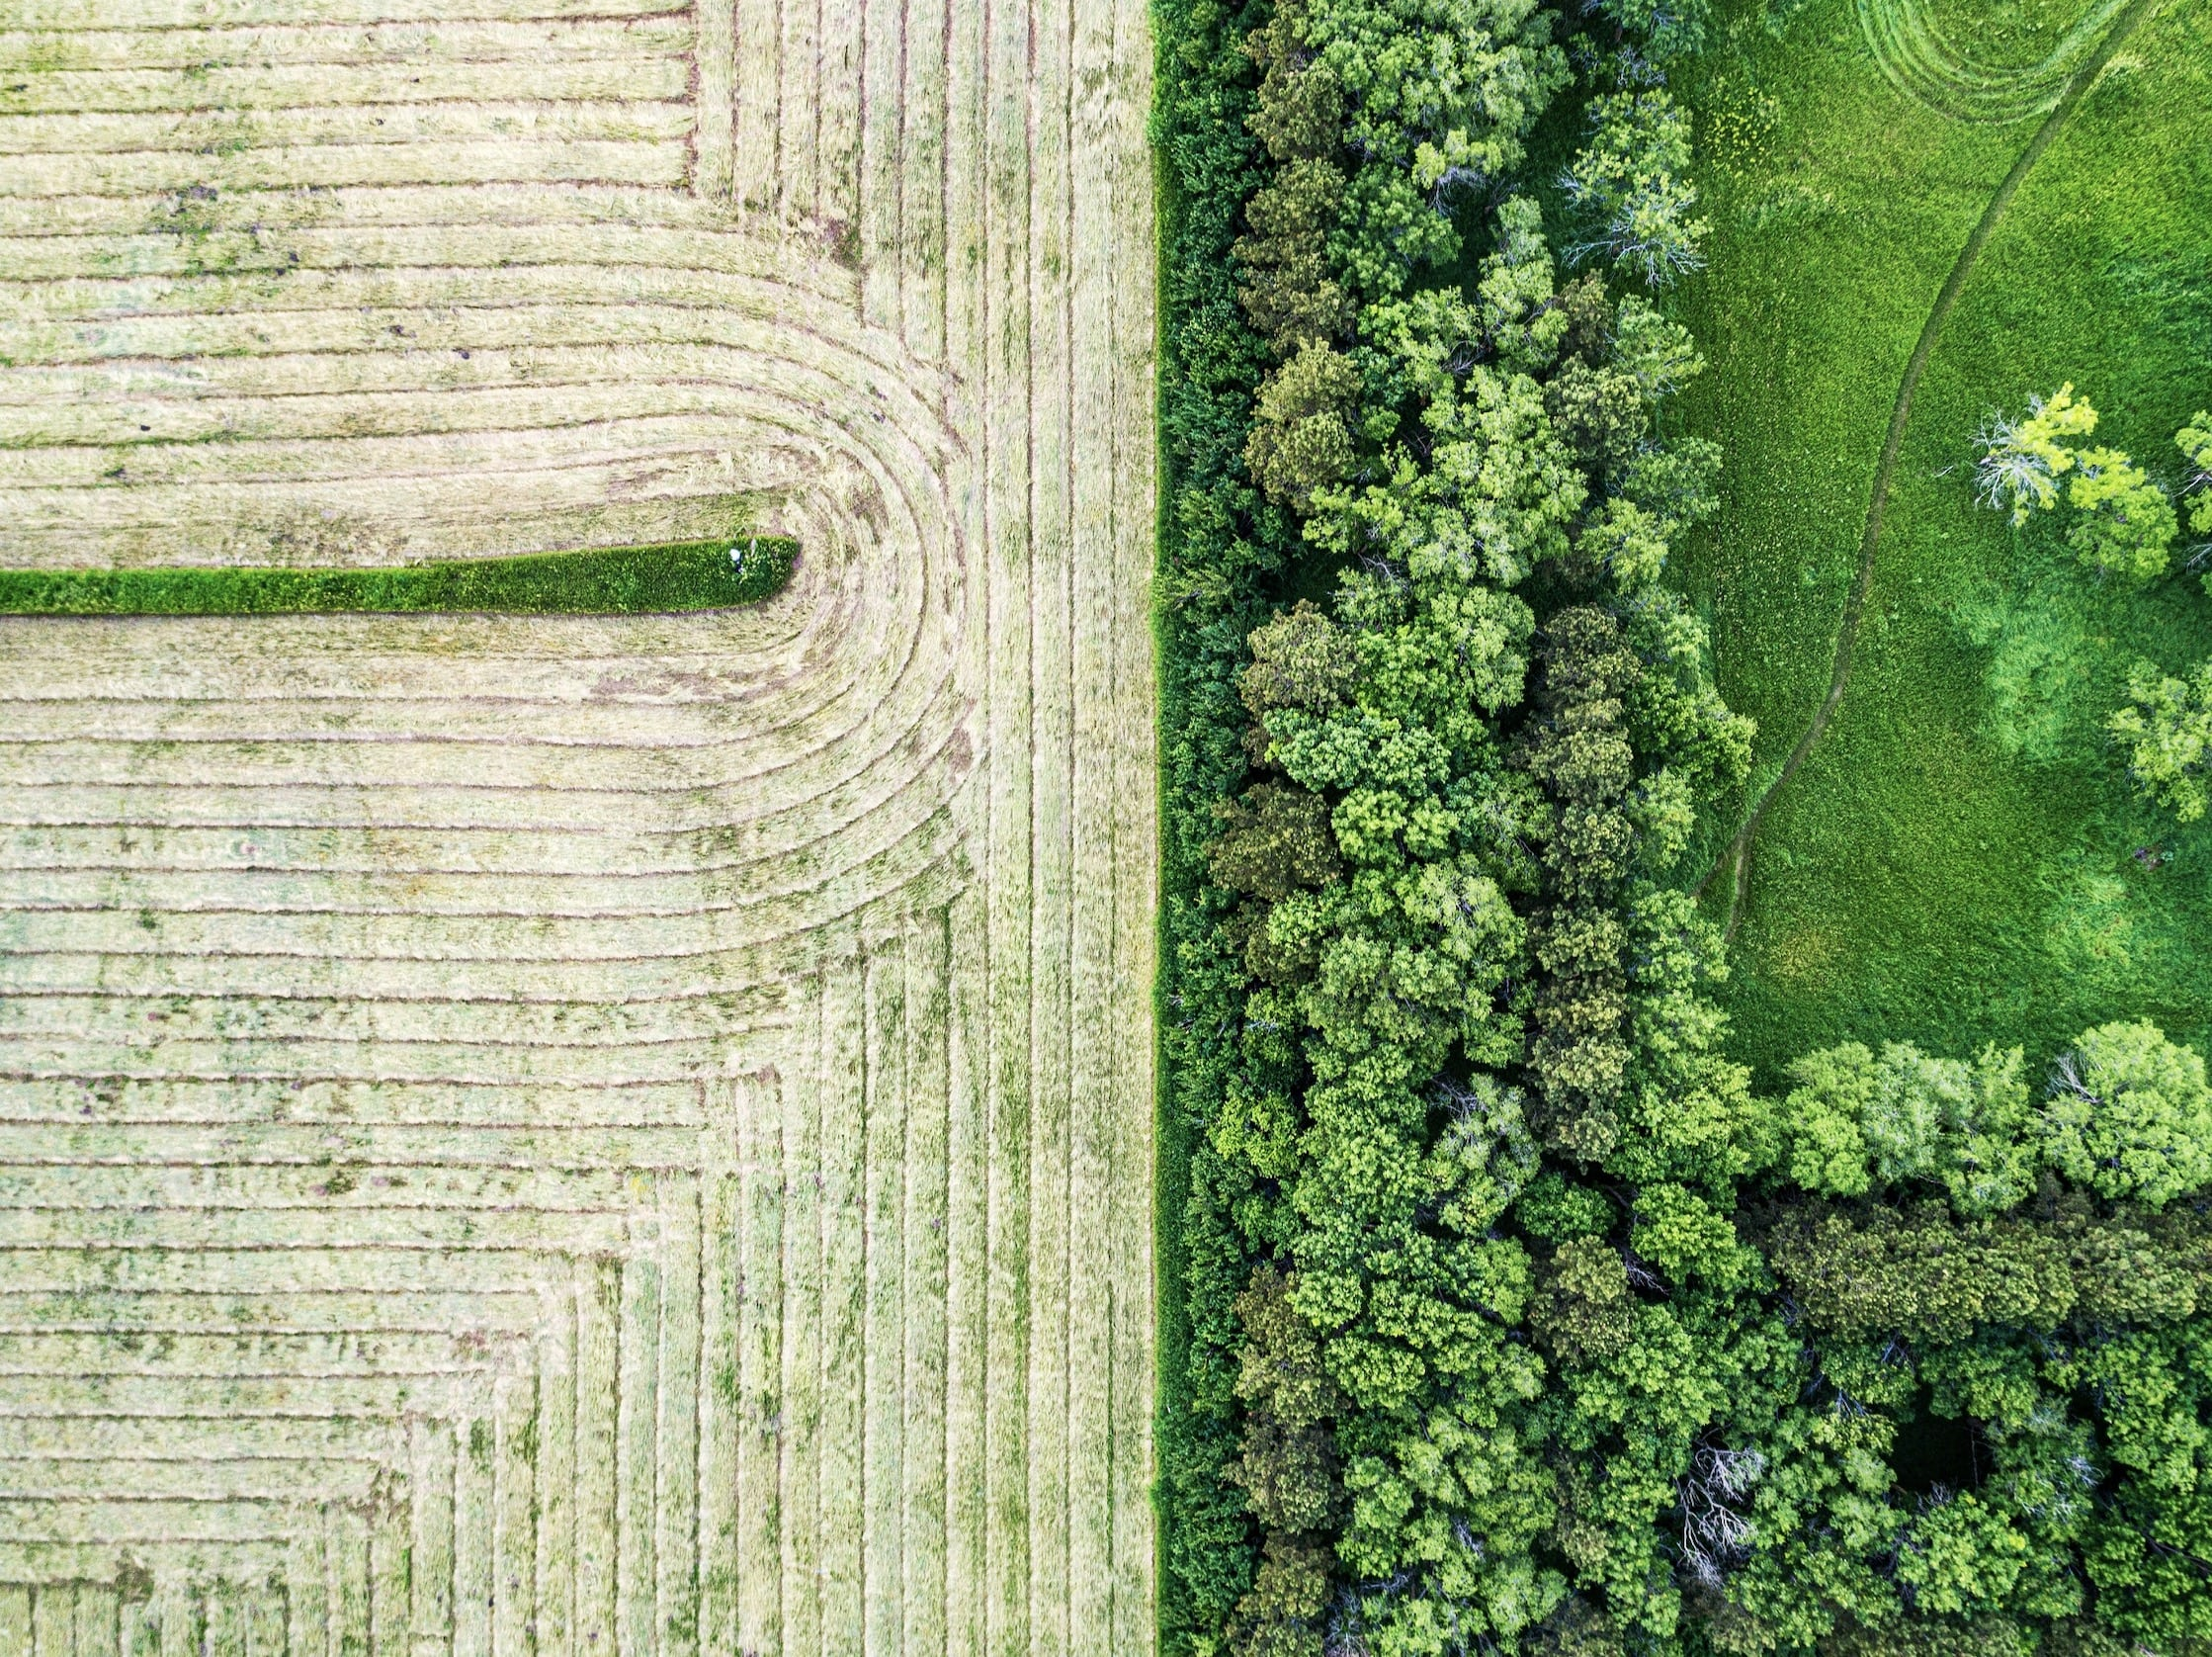 Aerial image of a field and dark green trees